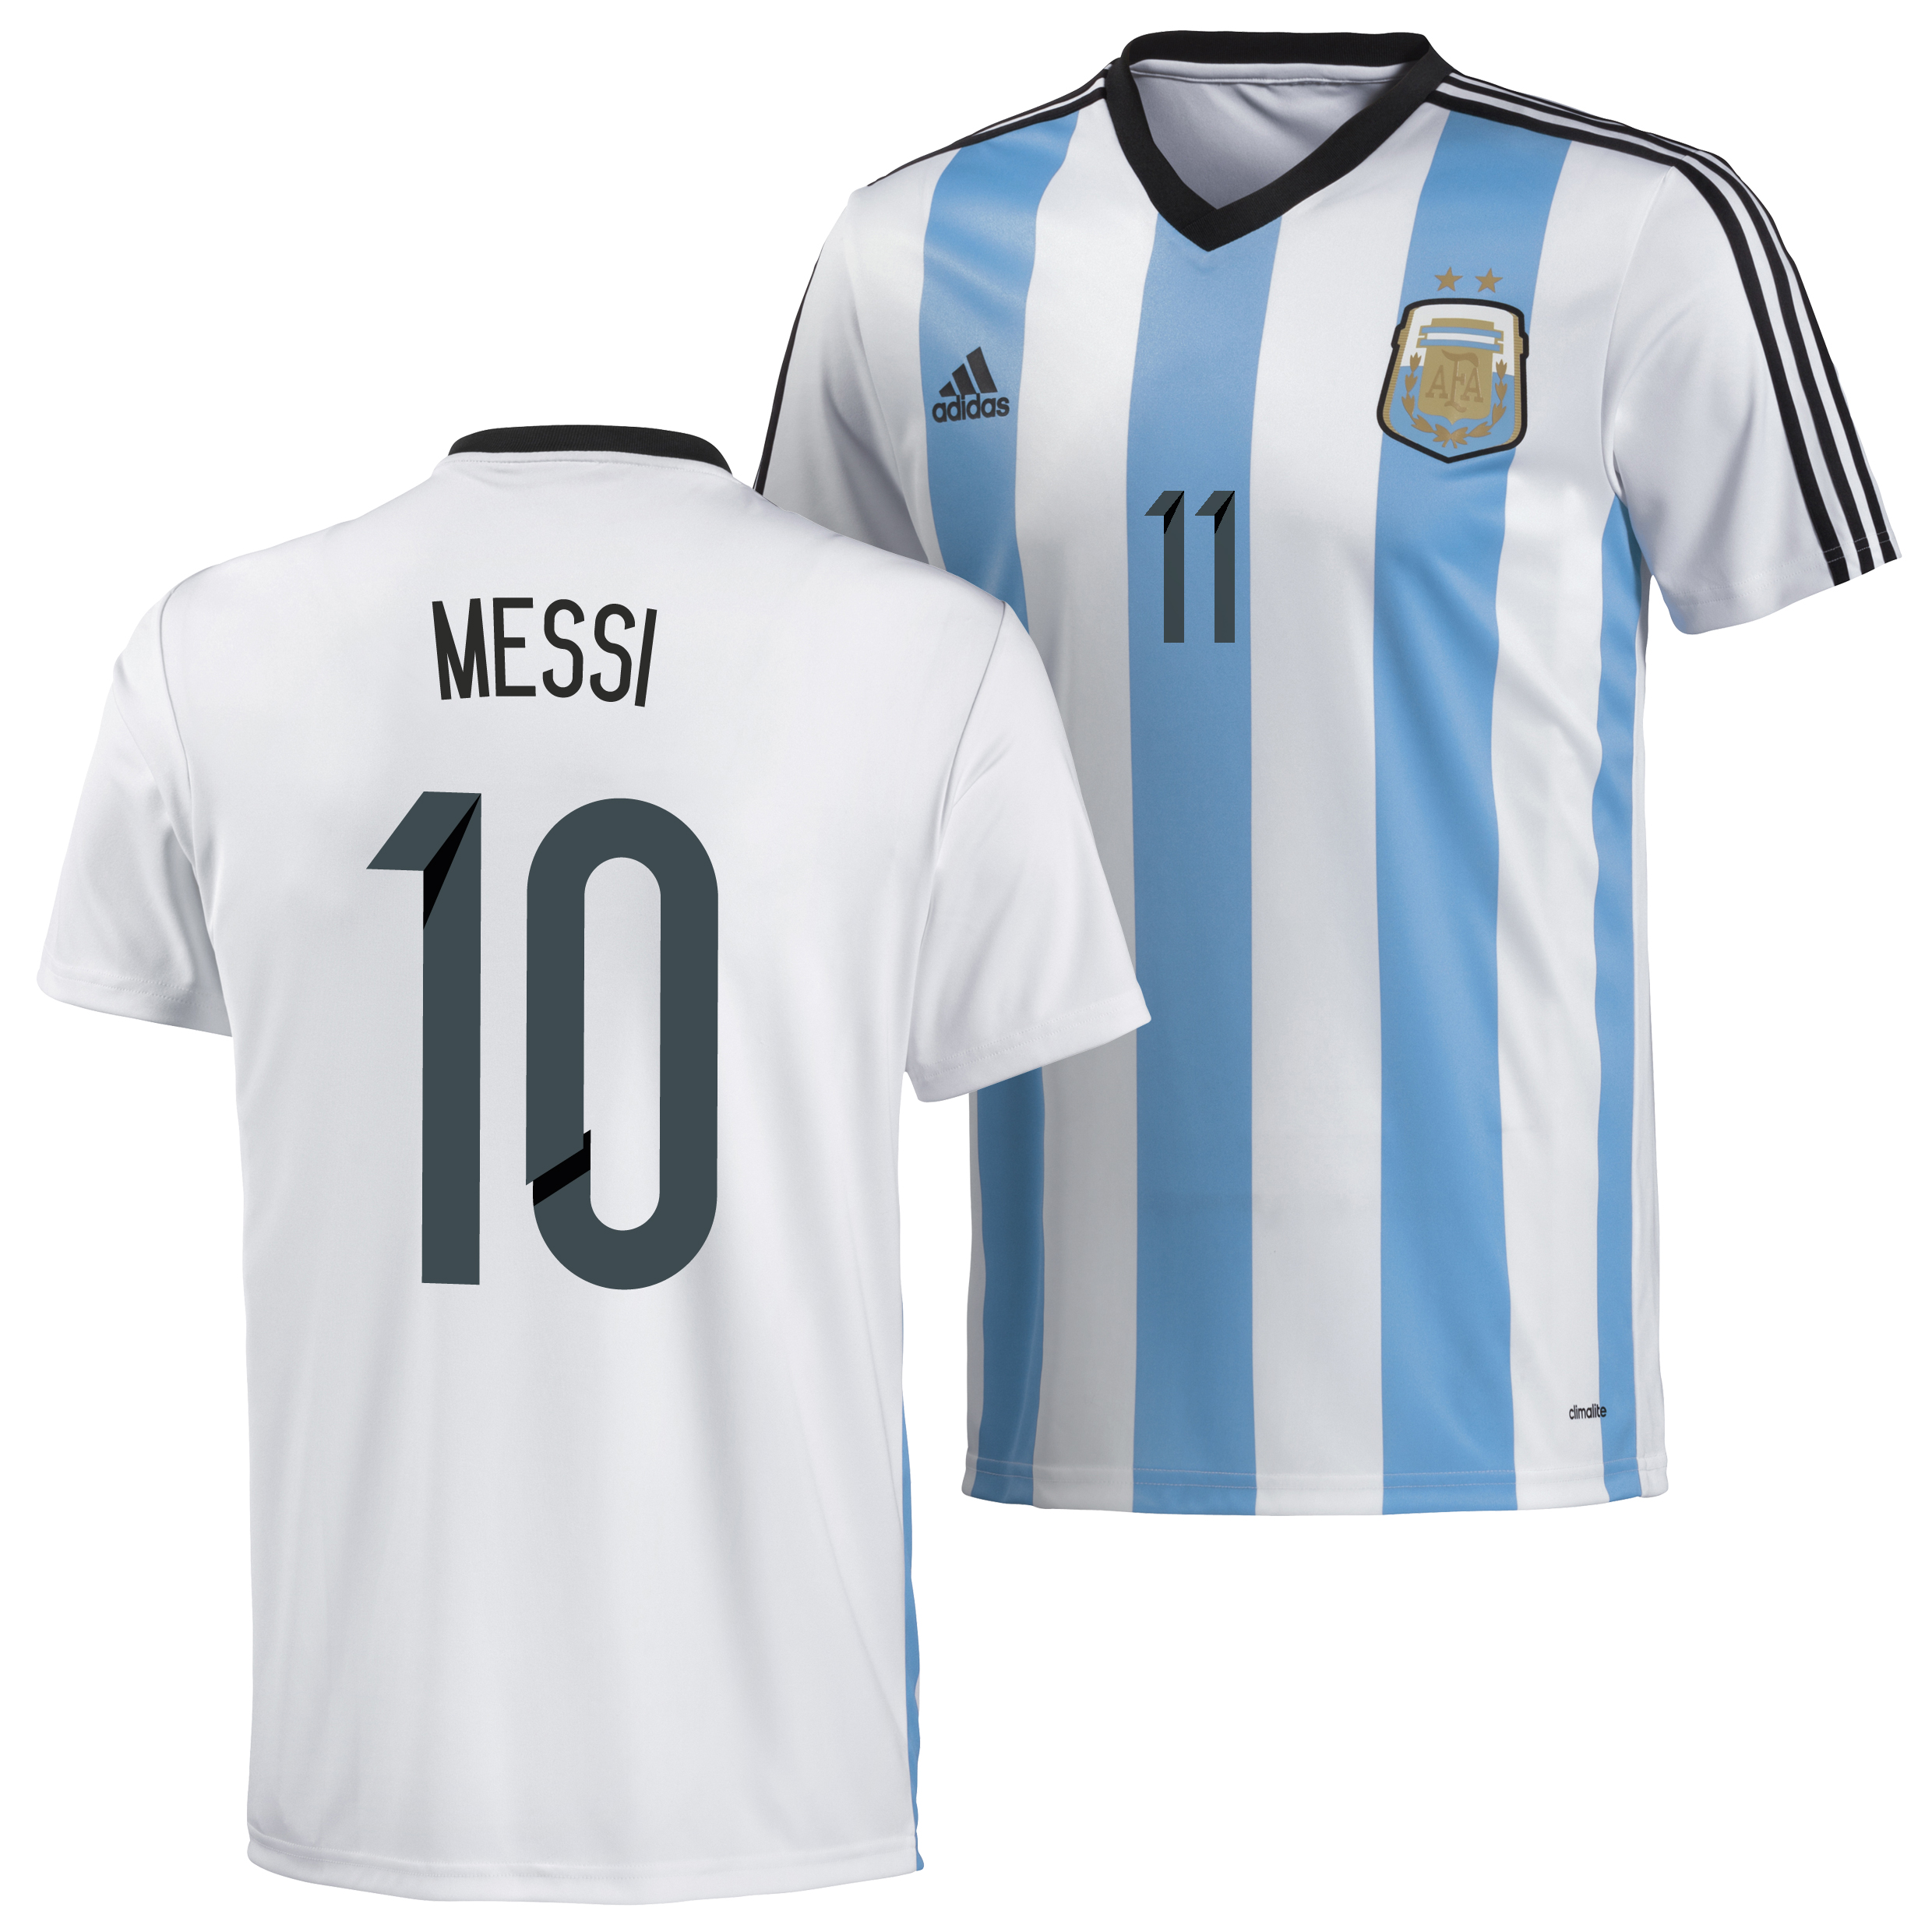 Argentina Home Replica T-Shirt 2013/14 with Messi 10 printing